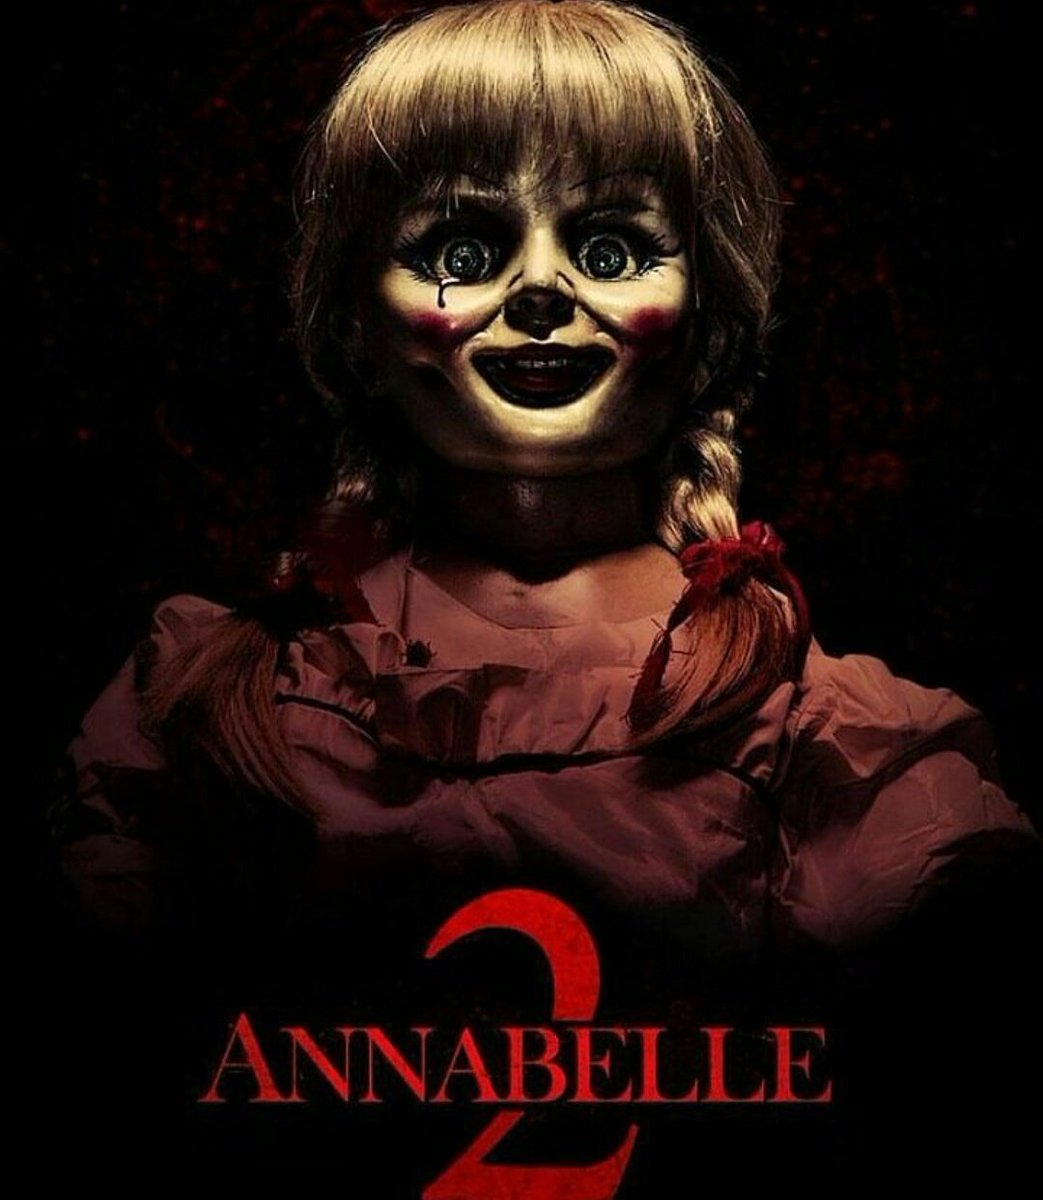 Went to see #AnnabelleCreation again tonight!  #HorrorMovies #horror #scary #Annabelle #movies #Like #RetweeetPlease #like4likes #FolloMe<br>http://pic.twitter.com/DHzz3YvuQ9